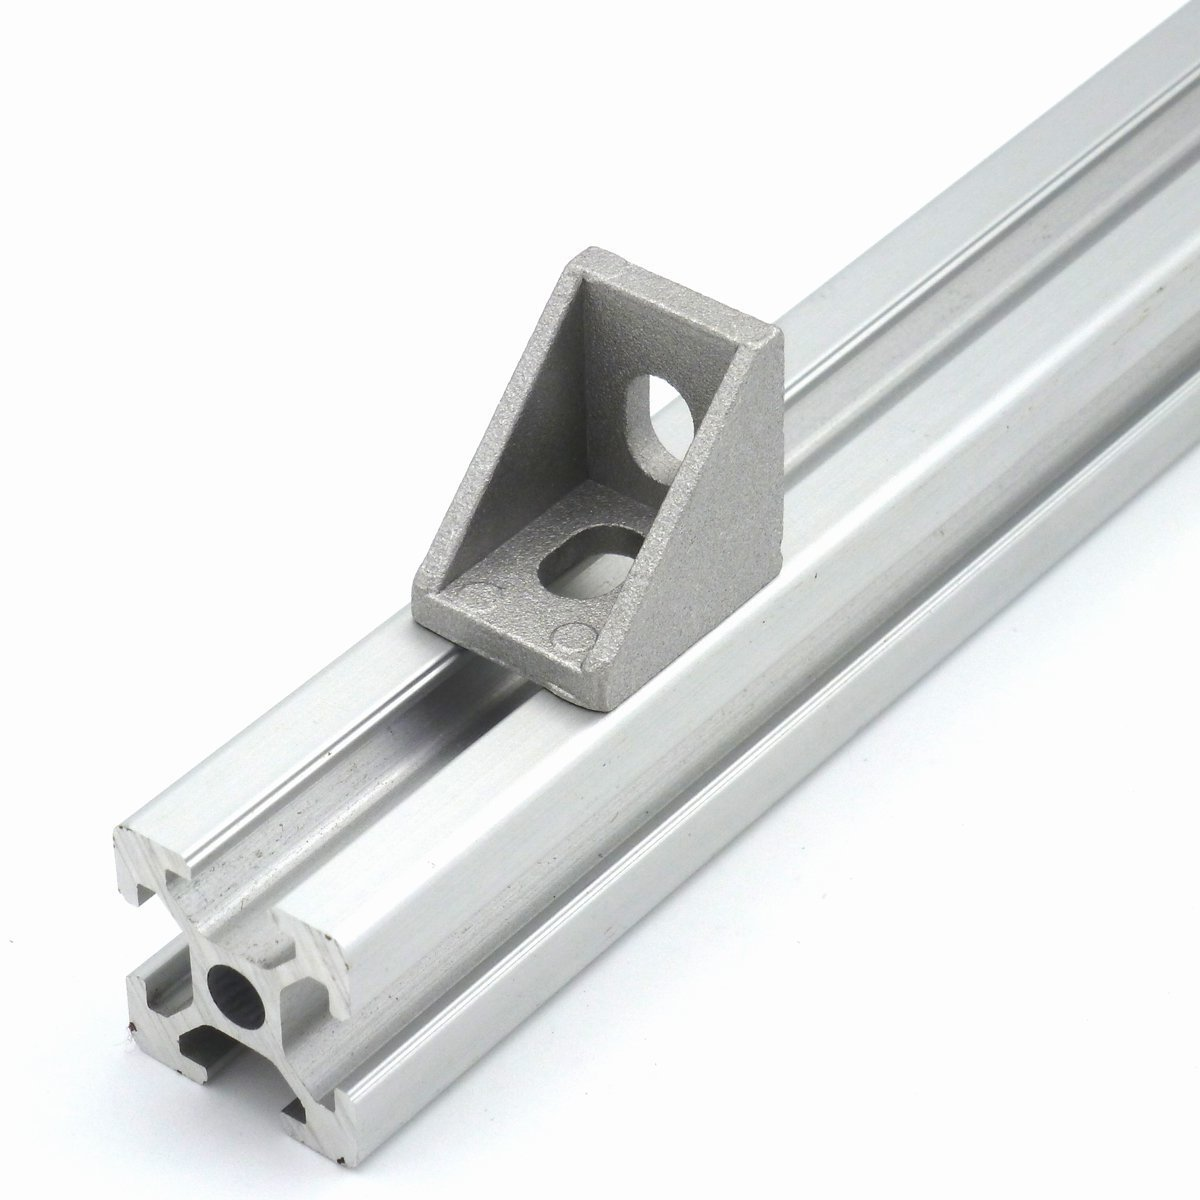 25 Pcs Cast Corner Bracket for 2020 Series Aluminum Extrusion 20x20x17mm, GURANTEED to Get It within 3-5 Business Days!!! (03-001)